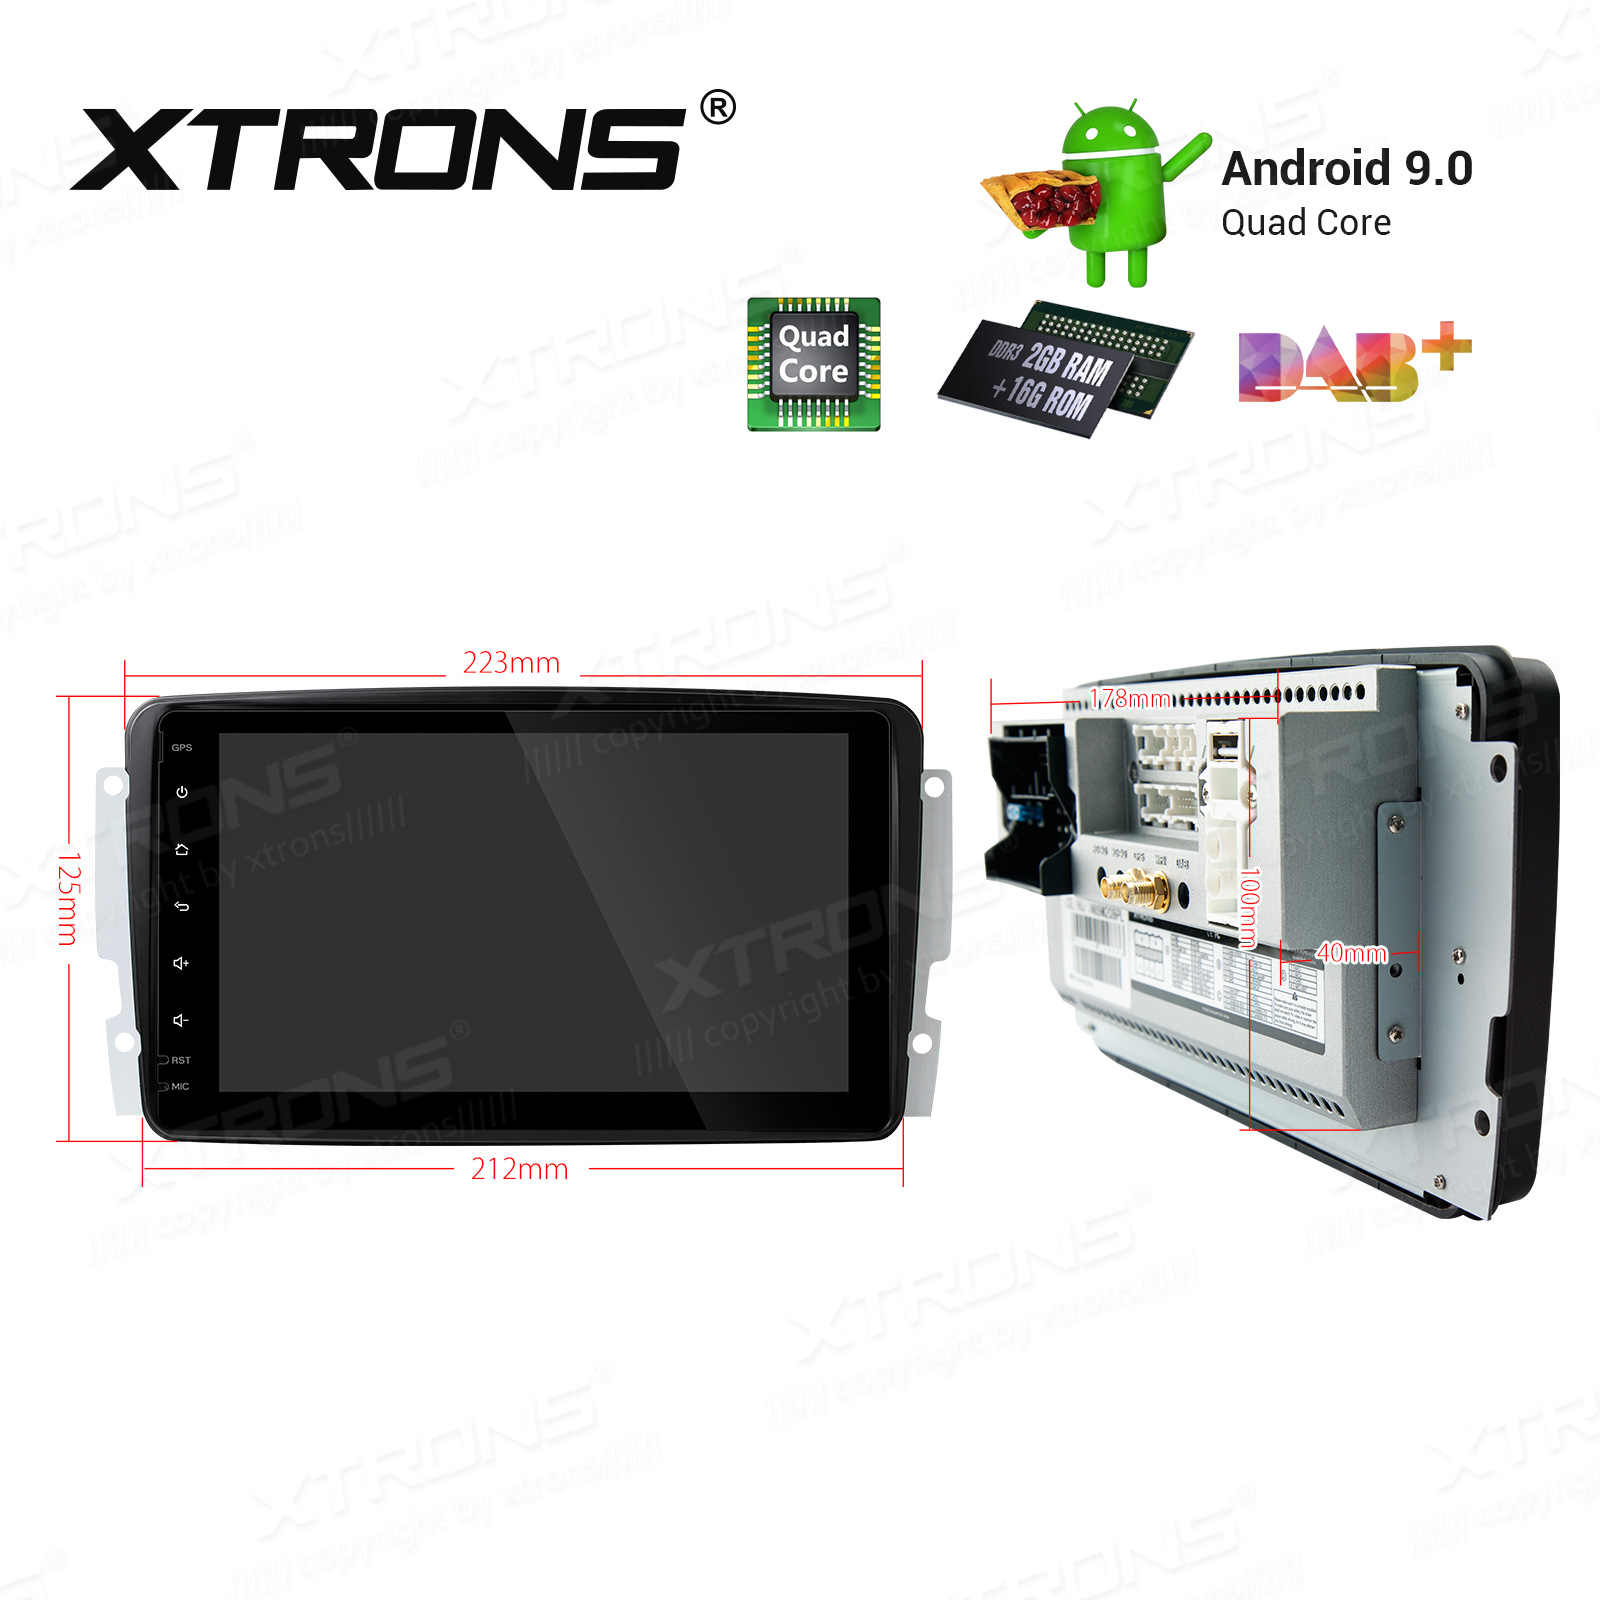 Xtrons Android 9 0 Unit Car Stereo Player For Mercedes Benz W168 W203 W209 C209 W463 Viano Vito Plug Play Design Gps No Dvd Car Multimedia Player Aliexpress